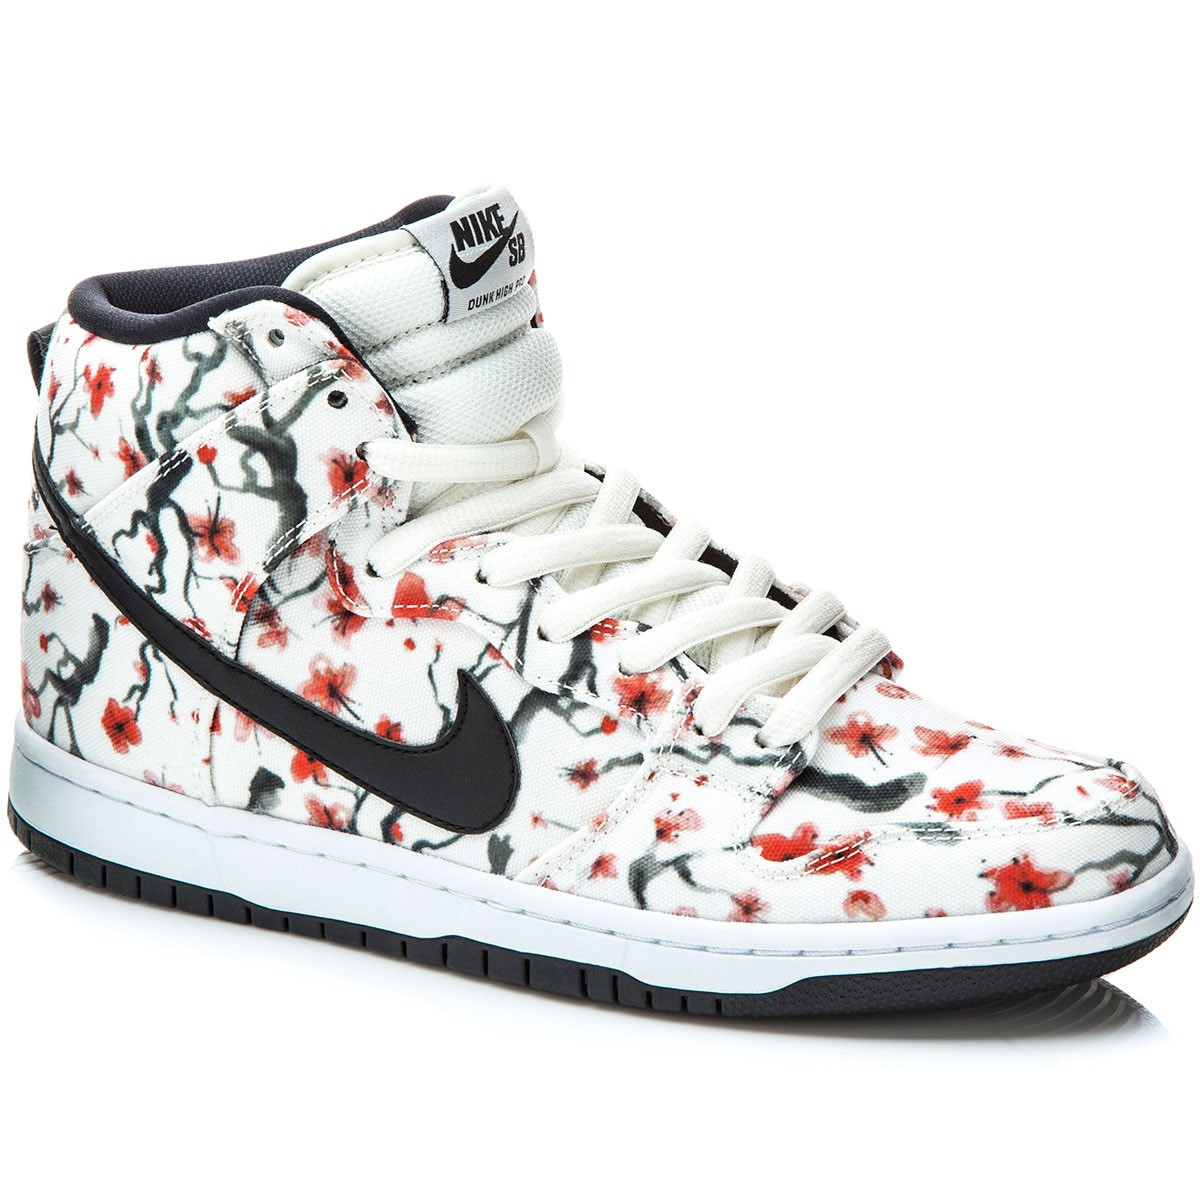 Nike Dunk High Pro SB Shoes - Sail/Crimson/White/Black - 7.0